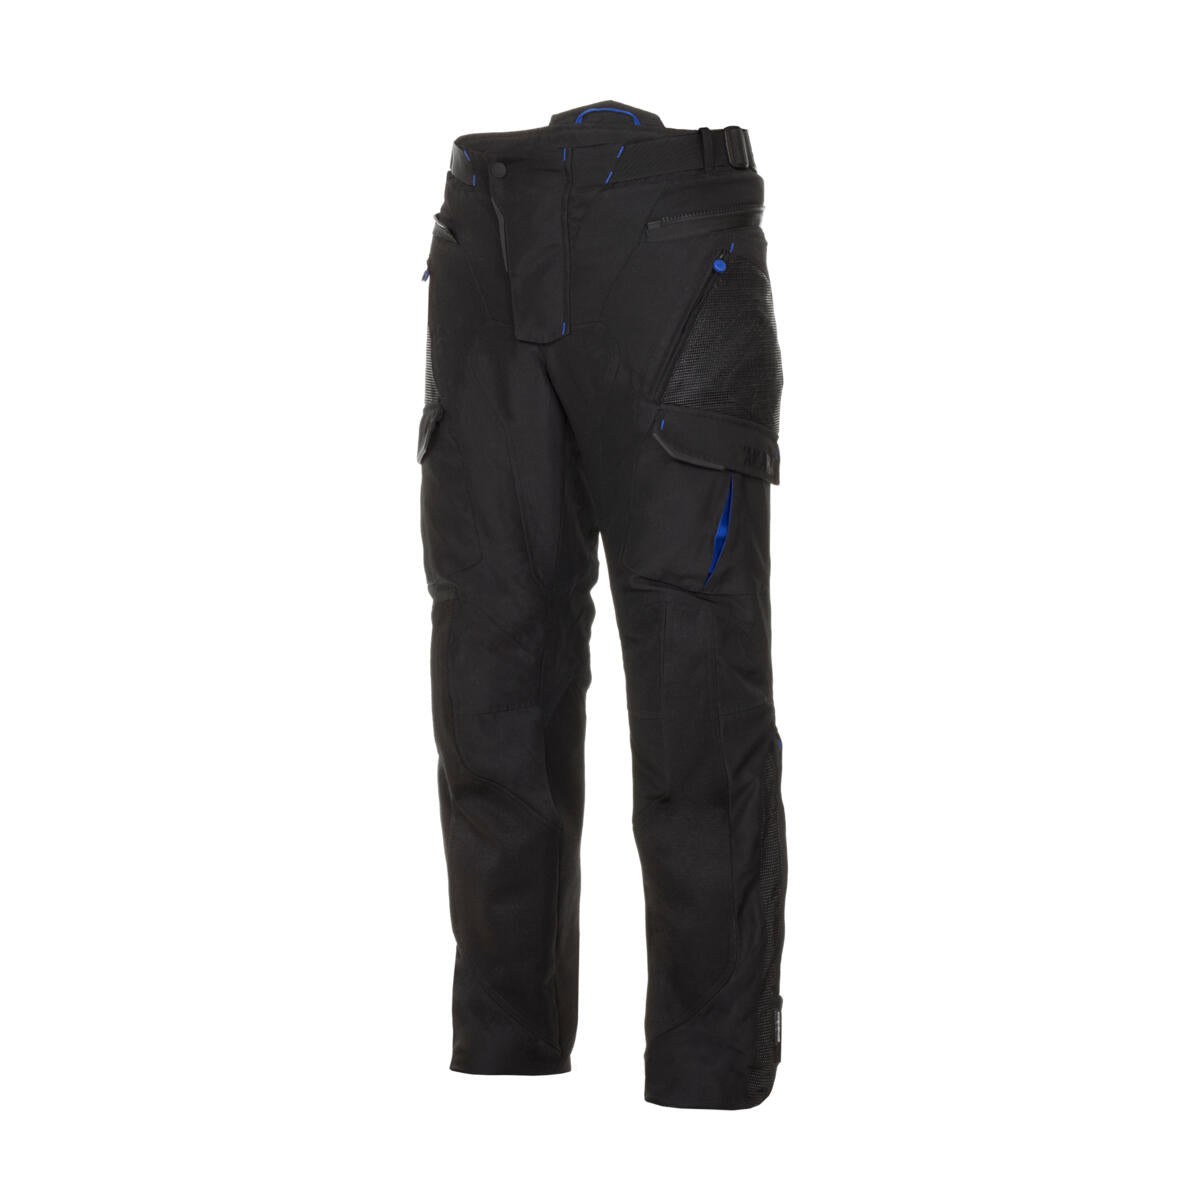 Adventure Men's Pants